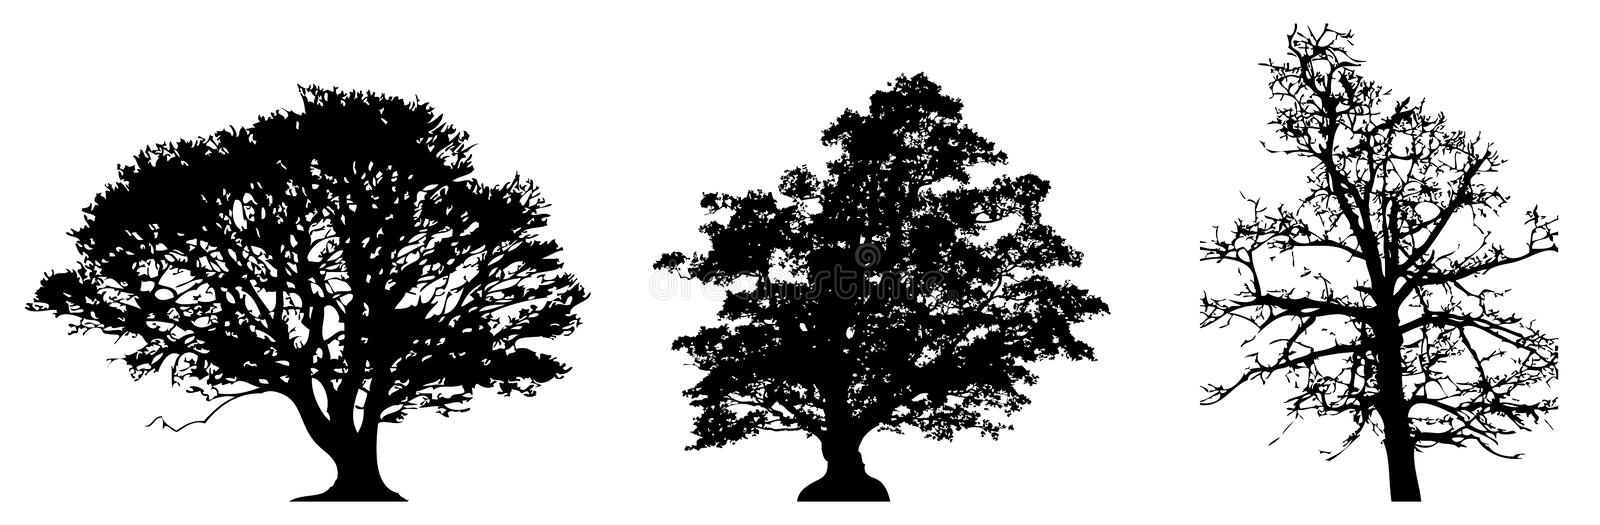 Trees silhouette. Illustration drawing of different types trees silhouette vector illustration